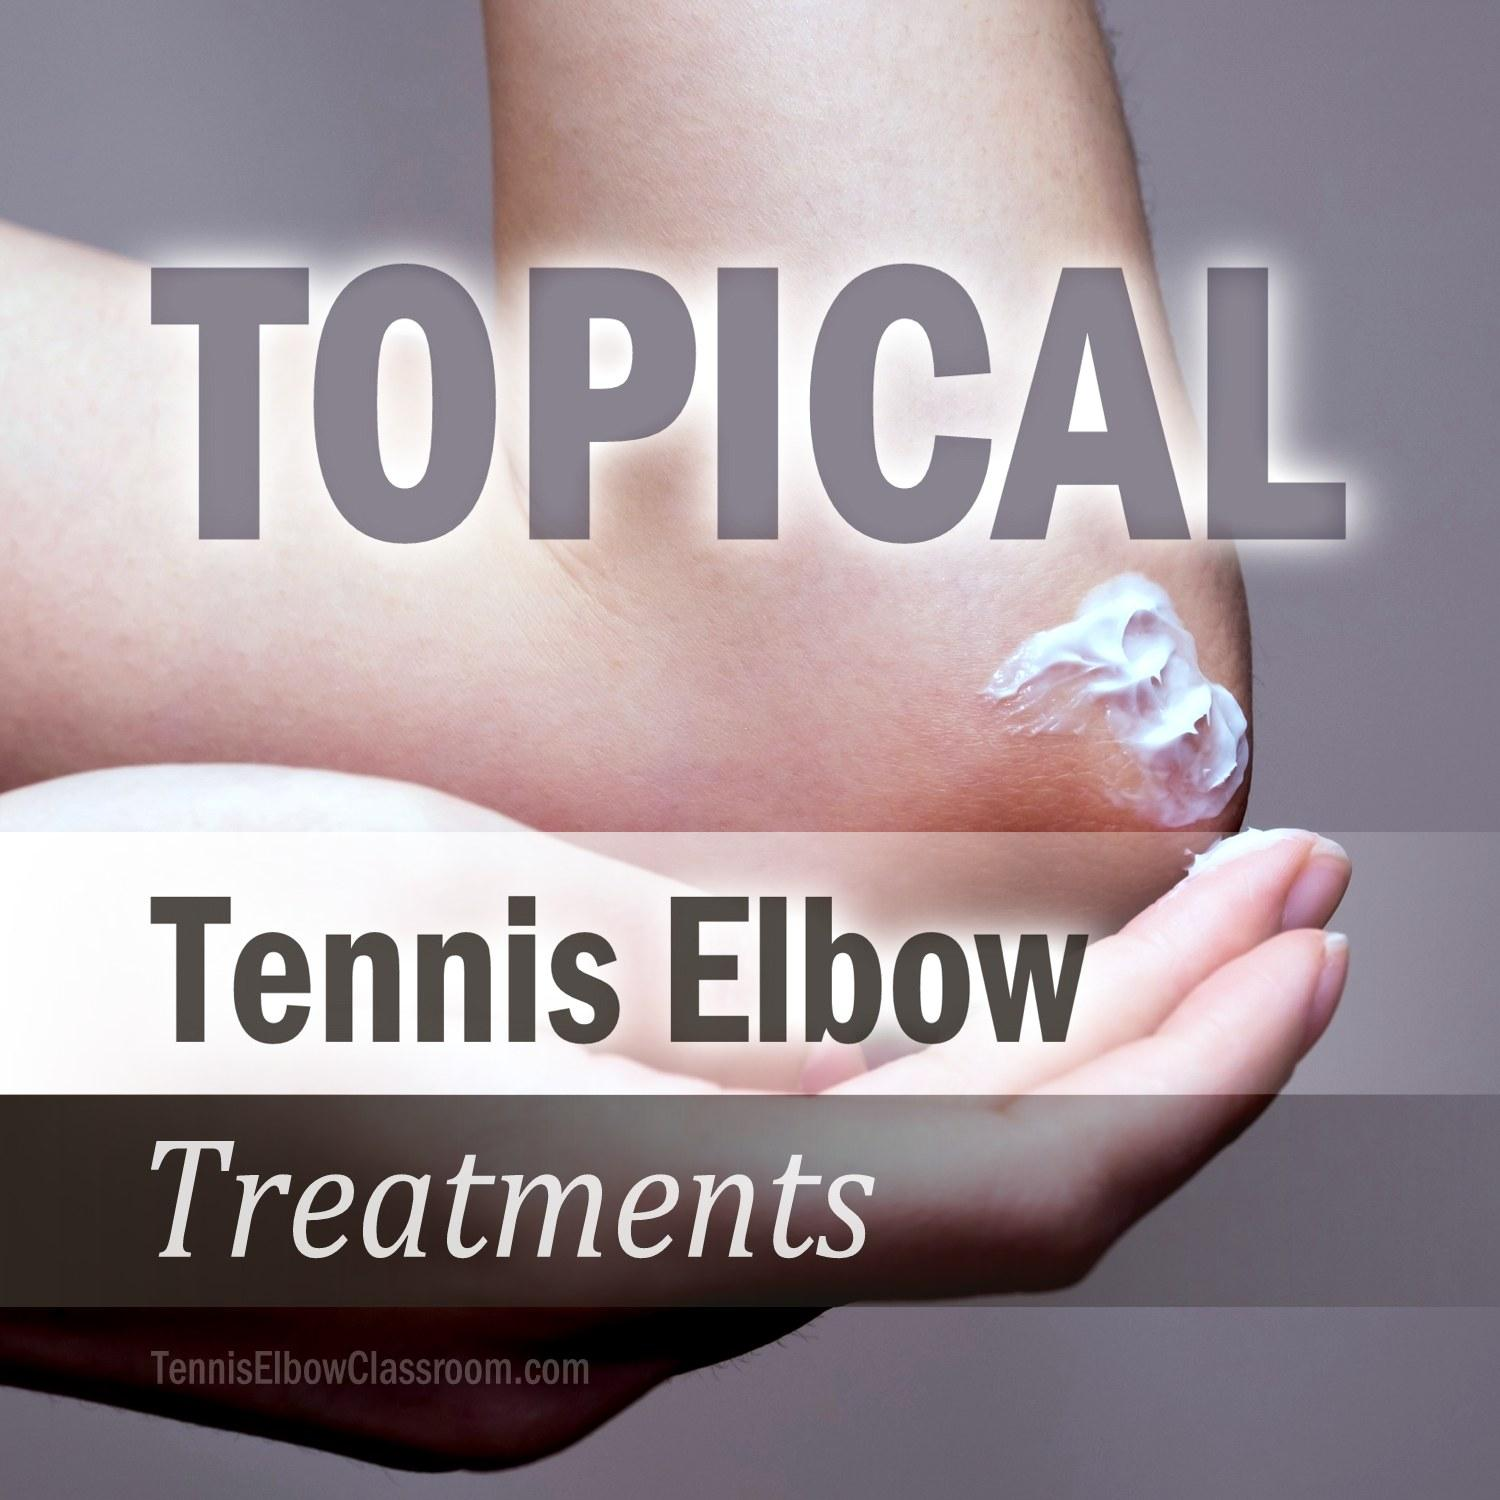 Podcast Cover for Topical Tennis Elbow Treatments